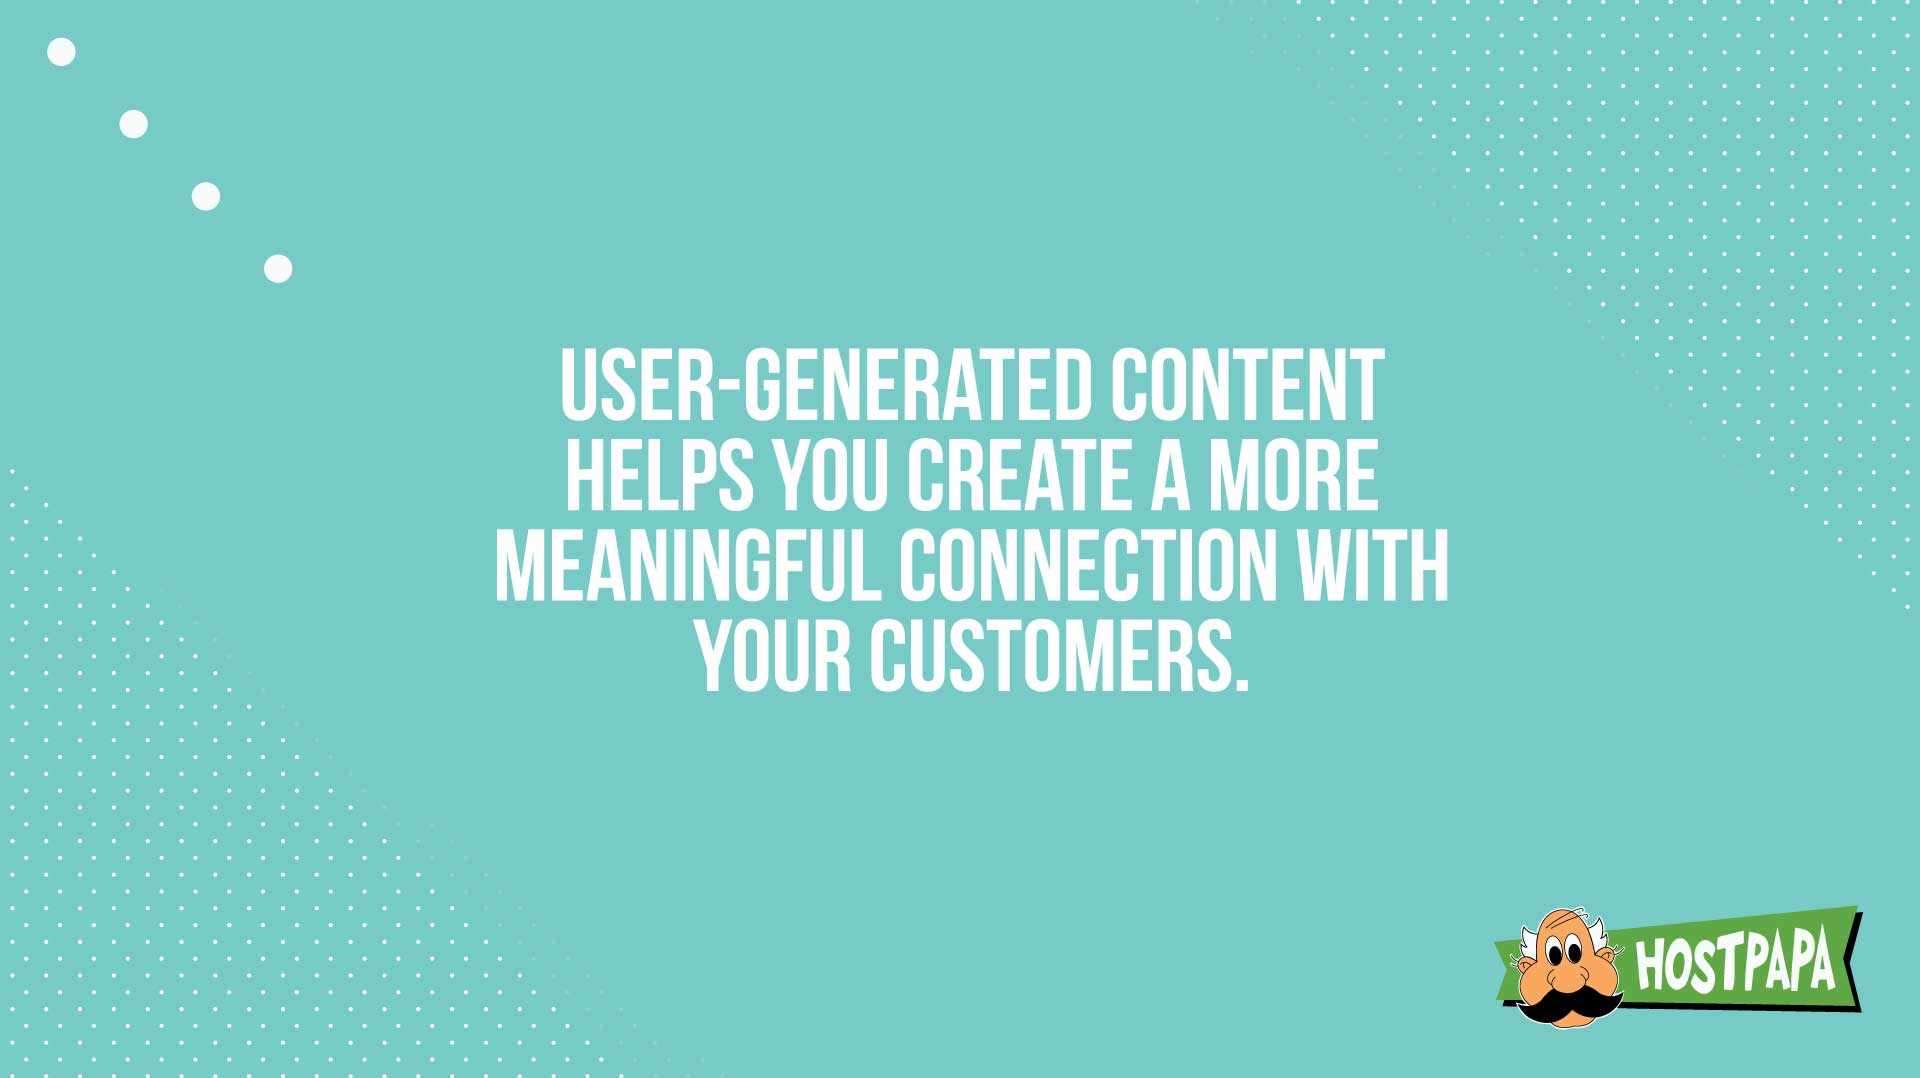 UGC helps you create a more meaningful connection with your customers